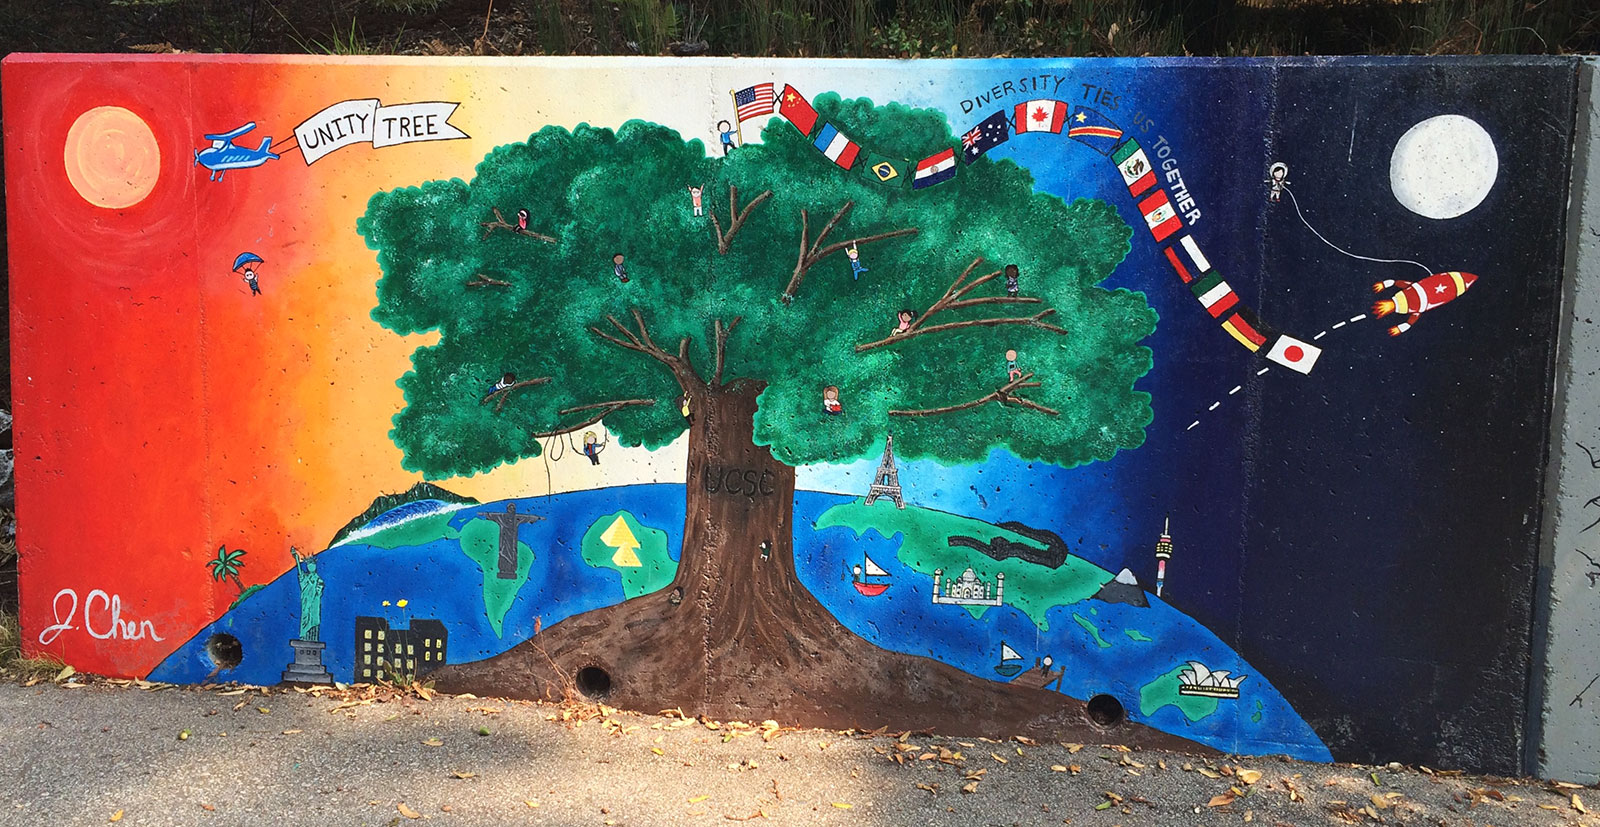 Mural with planet earth behind a big tree and multiple flags